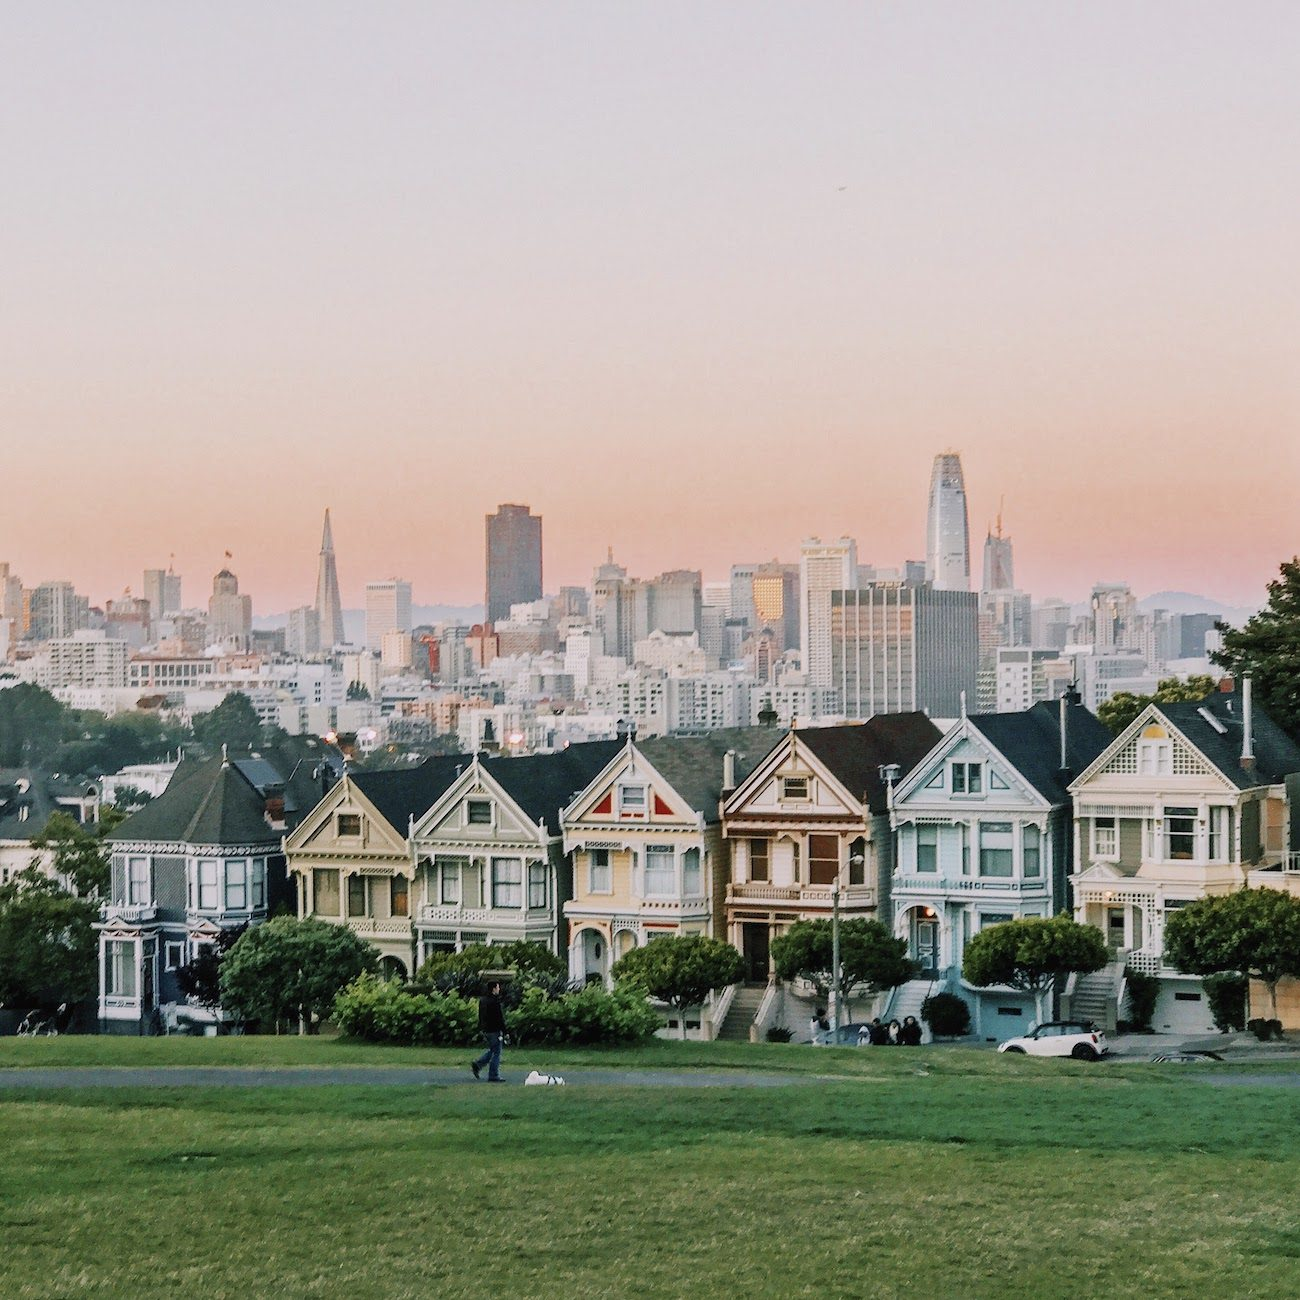 Sunset over Alamo Square Park.